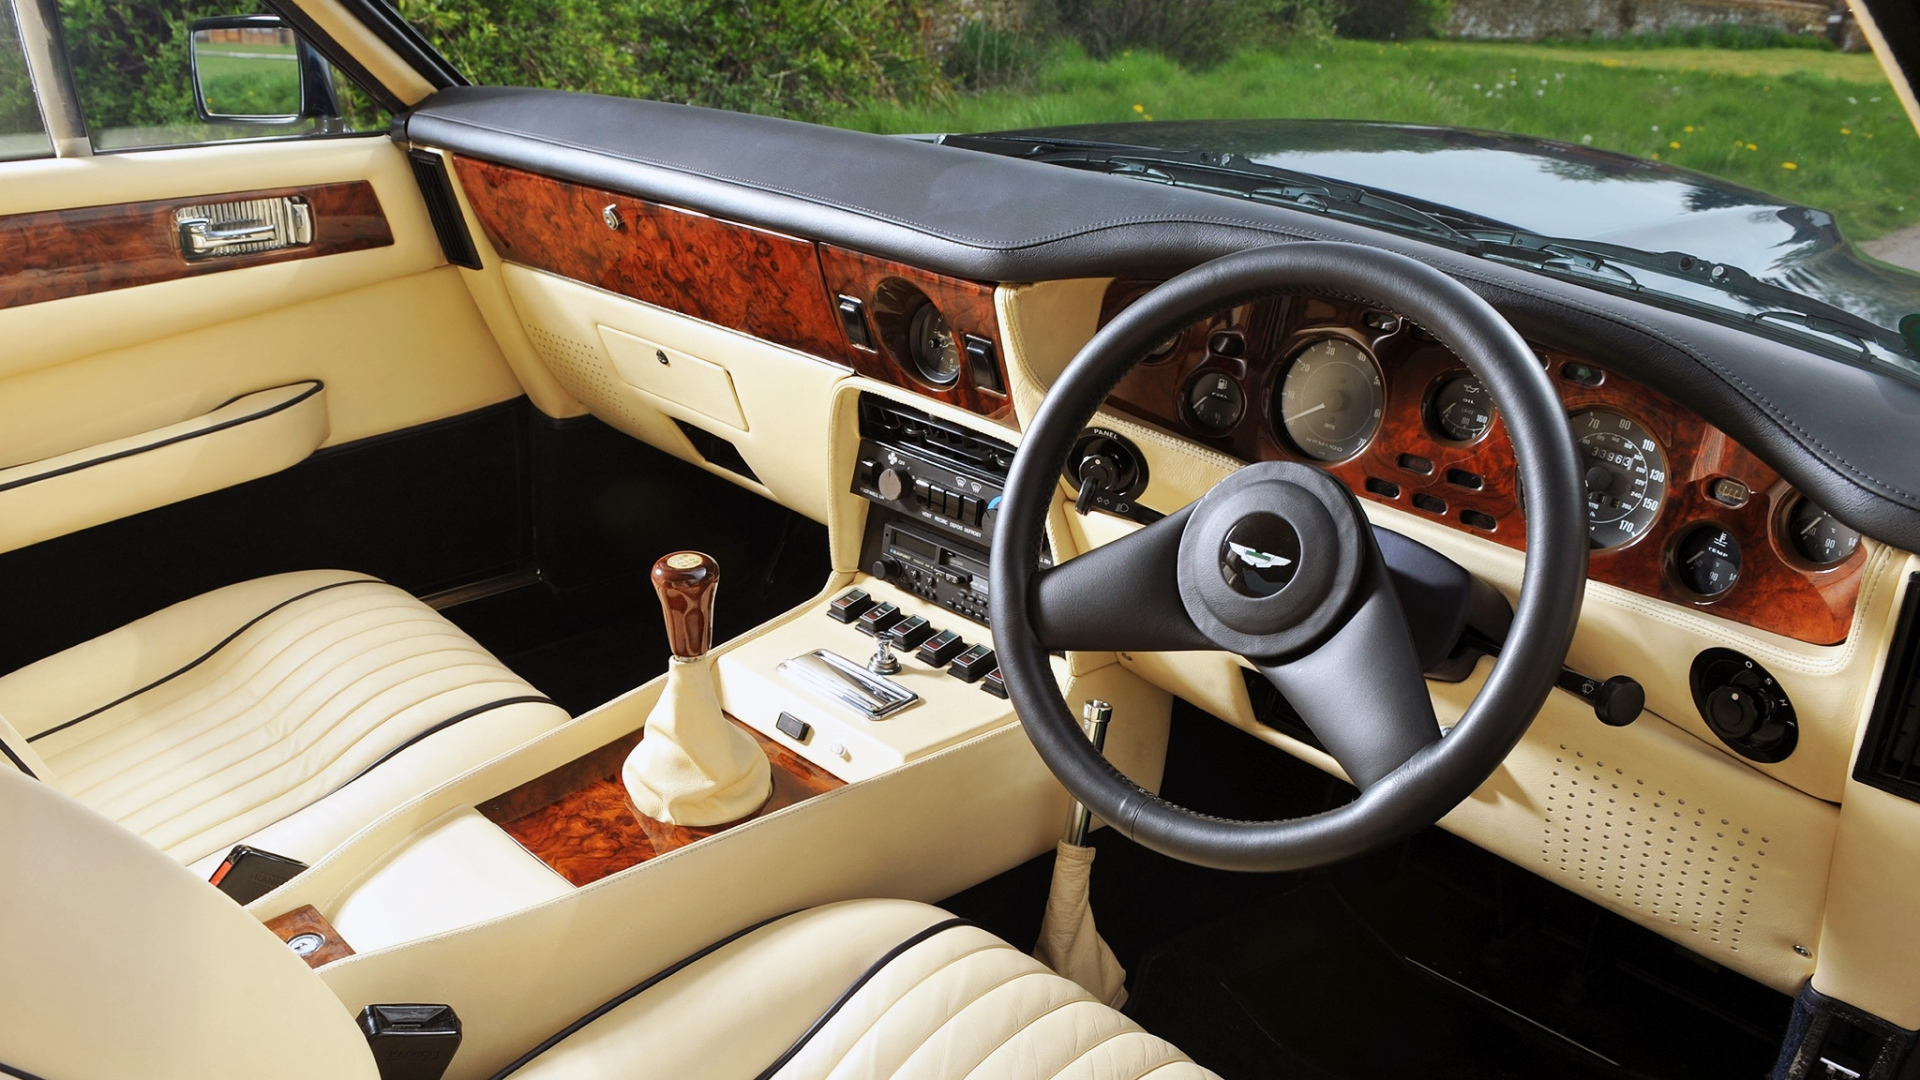 Wallpaper Aston Martin V8 Vantage 1977 Salon Interior Steering Wheel Speedometer